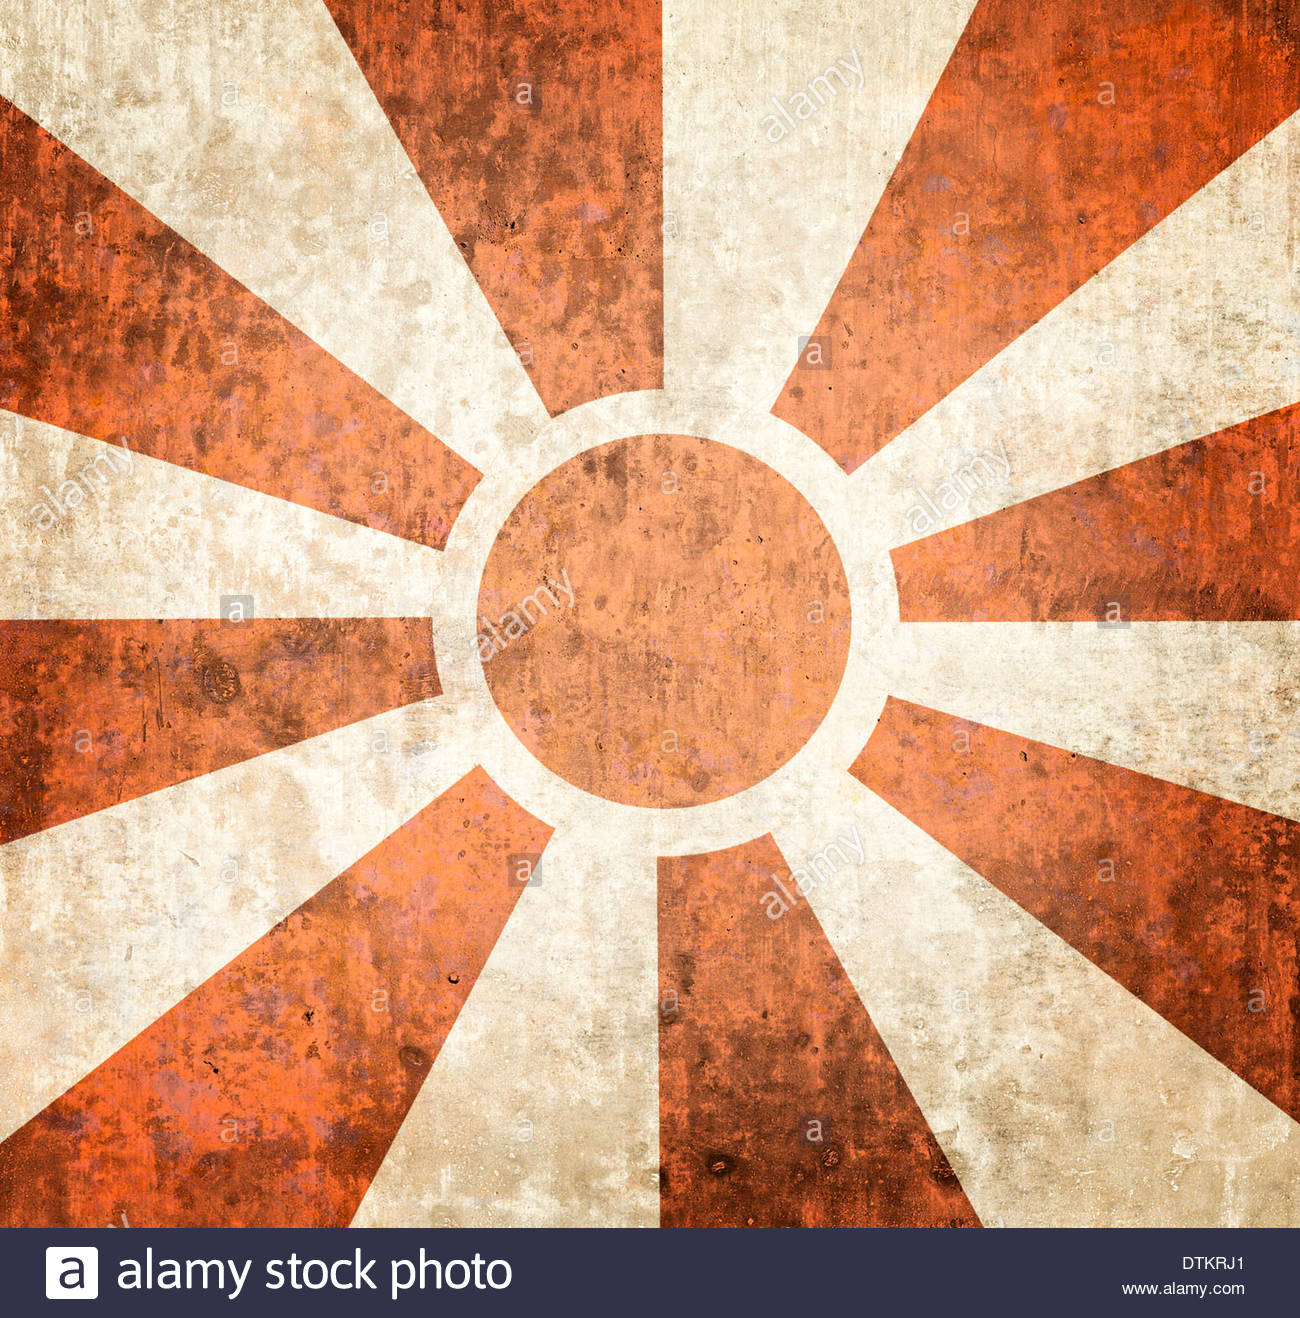 Stock Photo Vintage Poster Design Background Of Multiple Orange Sunbeams On Grunge 66818473 on retro wall art